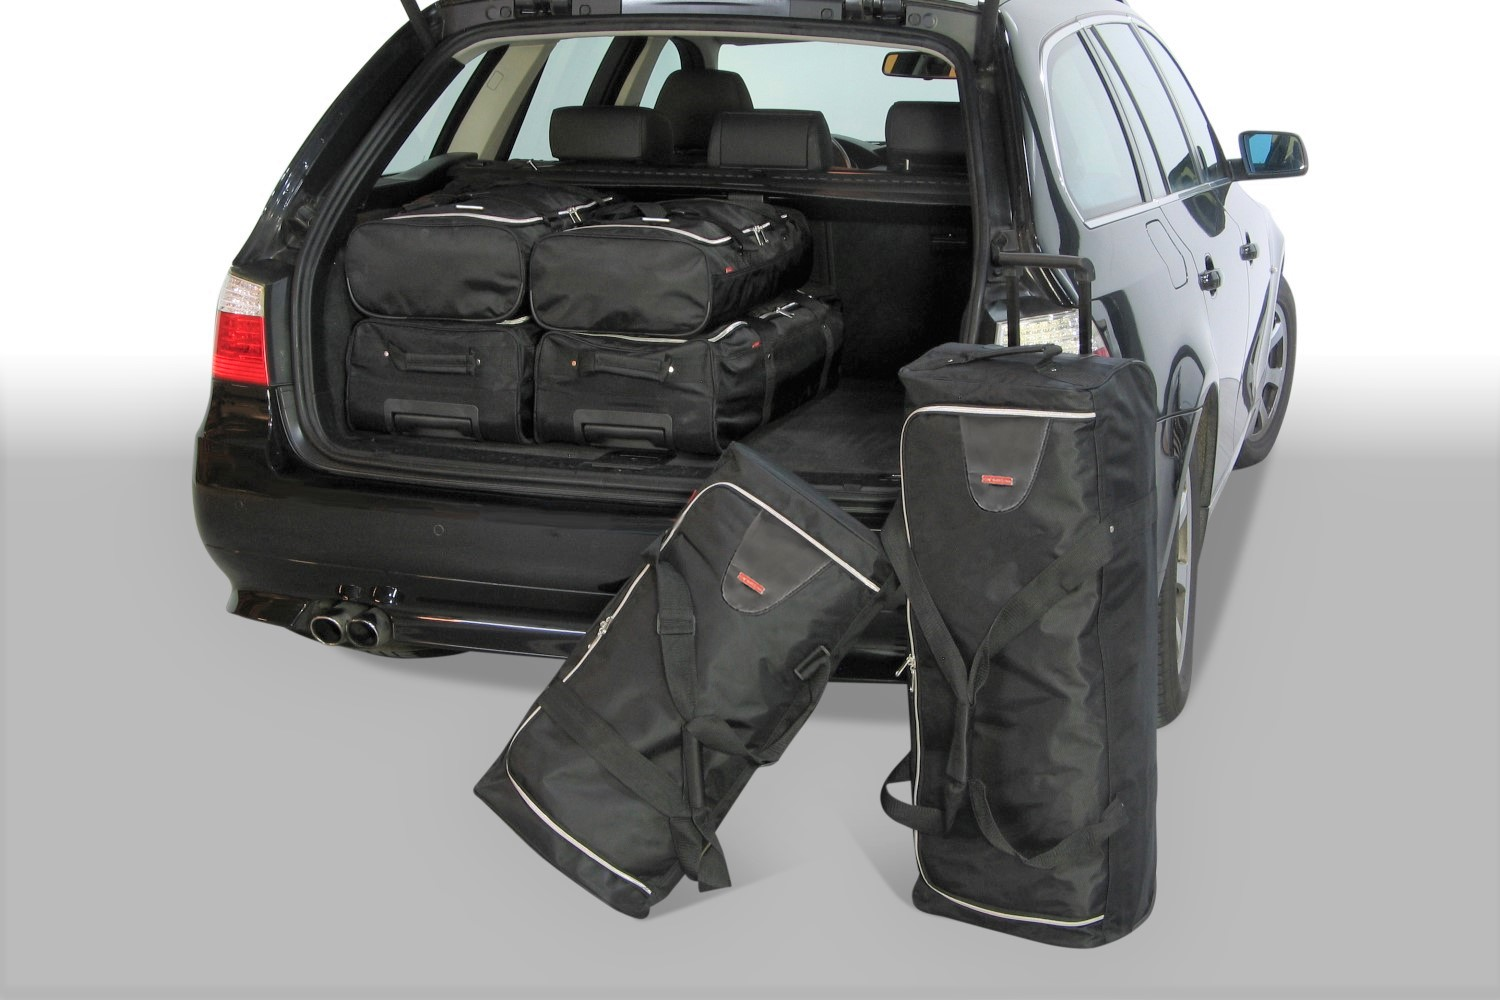 BMW 5 series Touring (E61) 2004-2011 Car-Bags.com travel bag set (1)